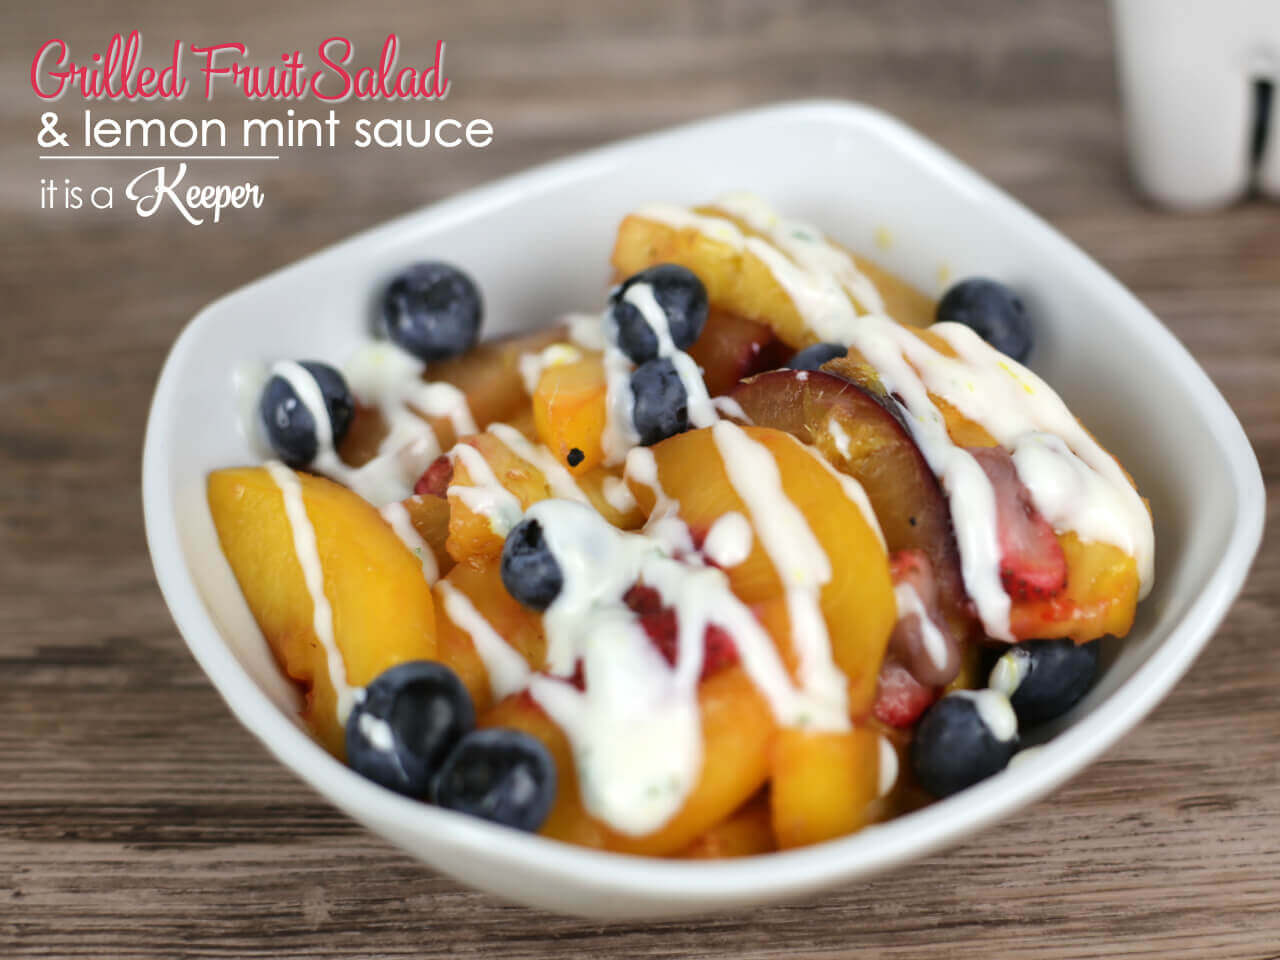 Grilled Fruit Salad with Lemon Mint Sauce - this easy grilled dessert recipe is light and fresh